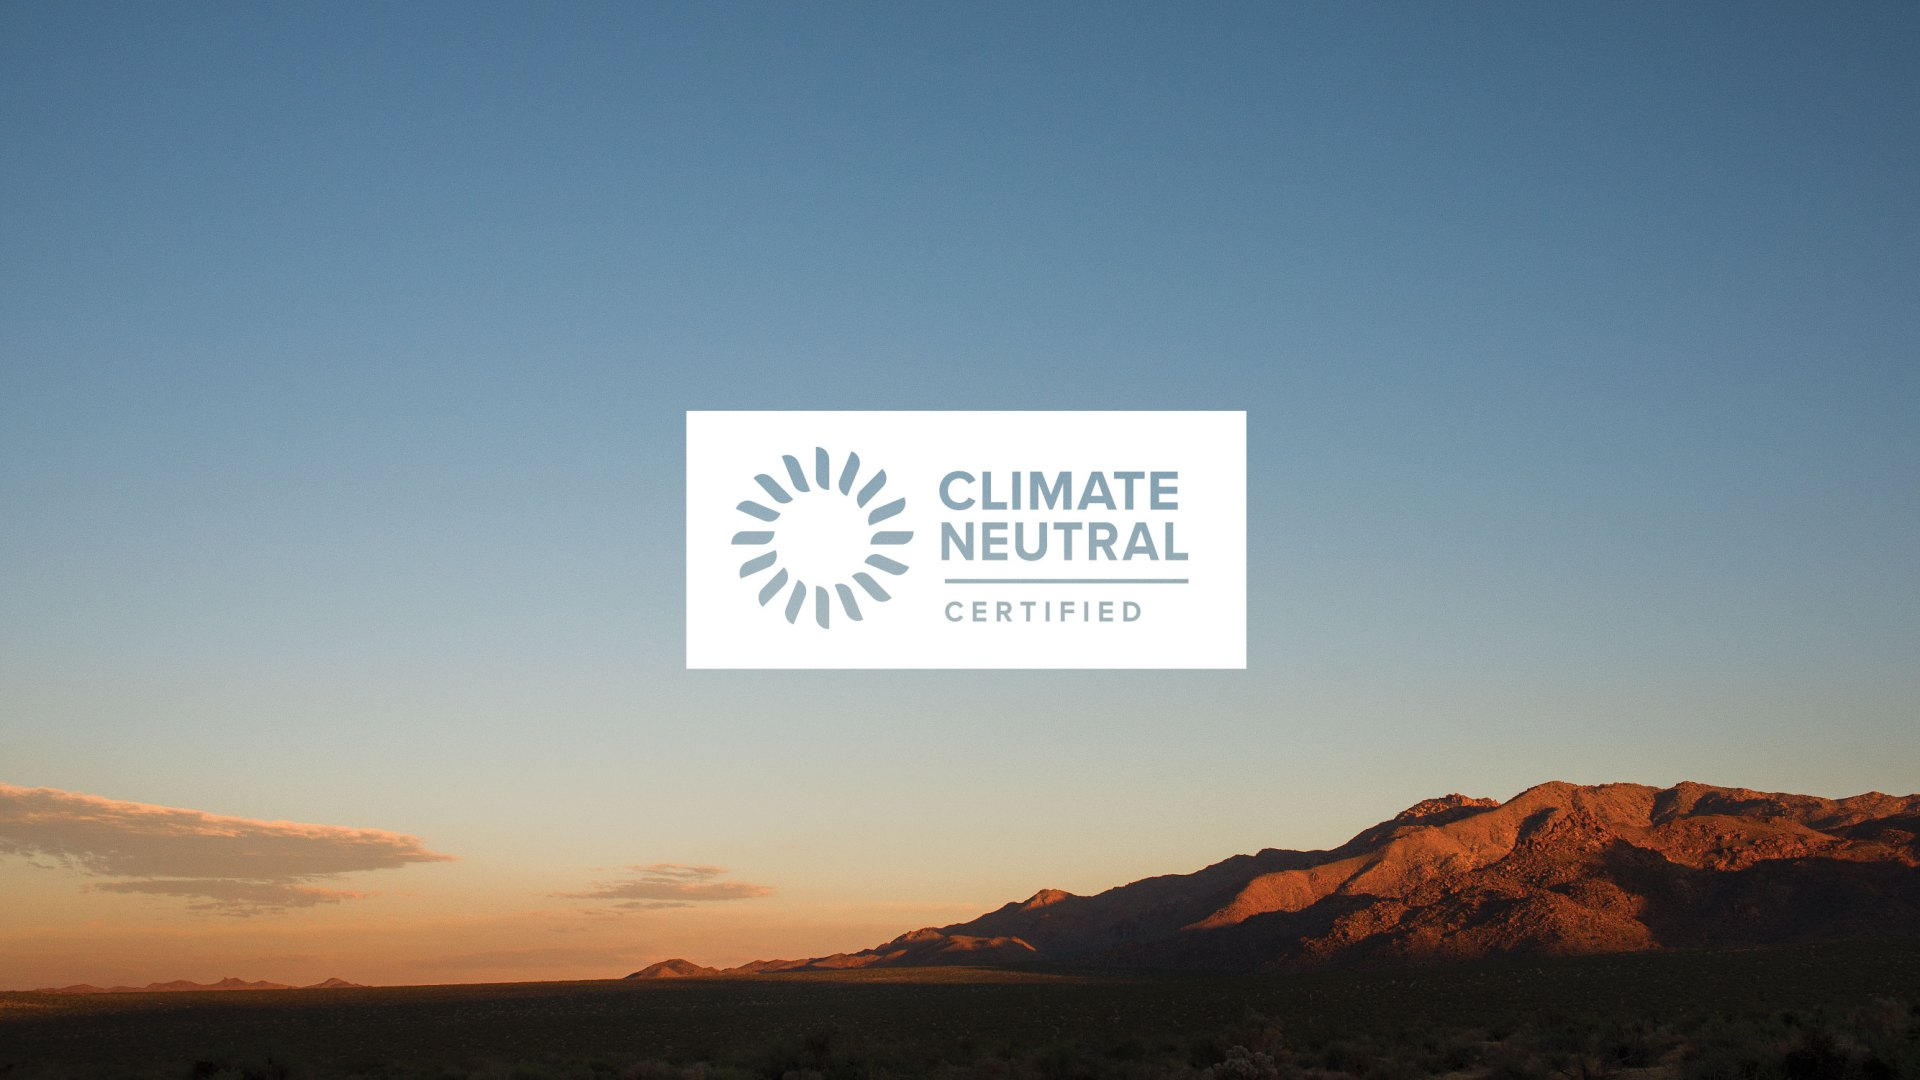 How This 'Climate Neutral' Brand Certification Aims to Significantly Help the Planet